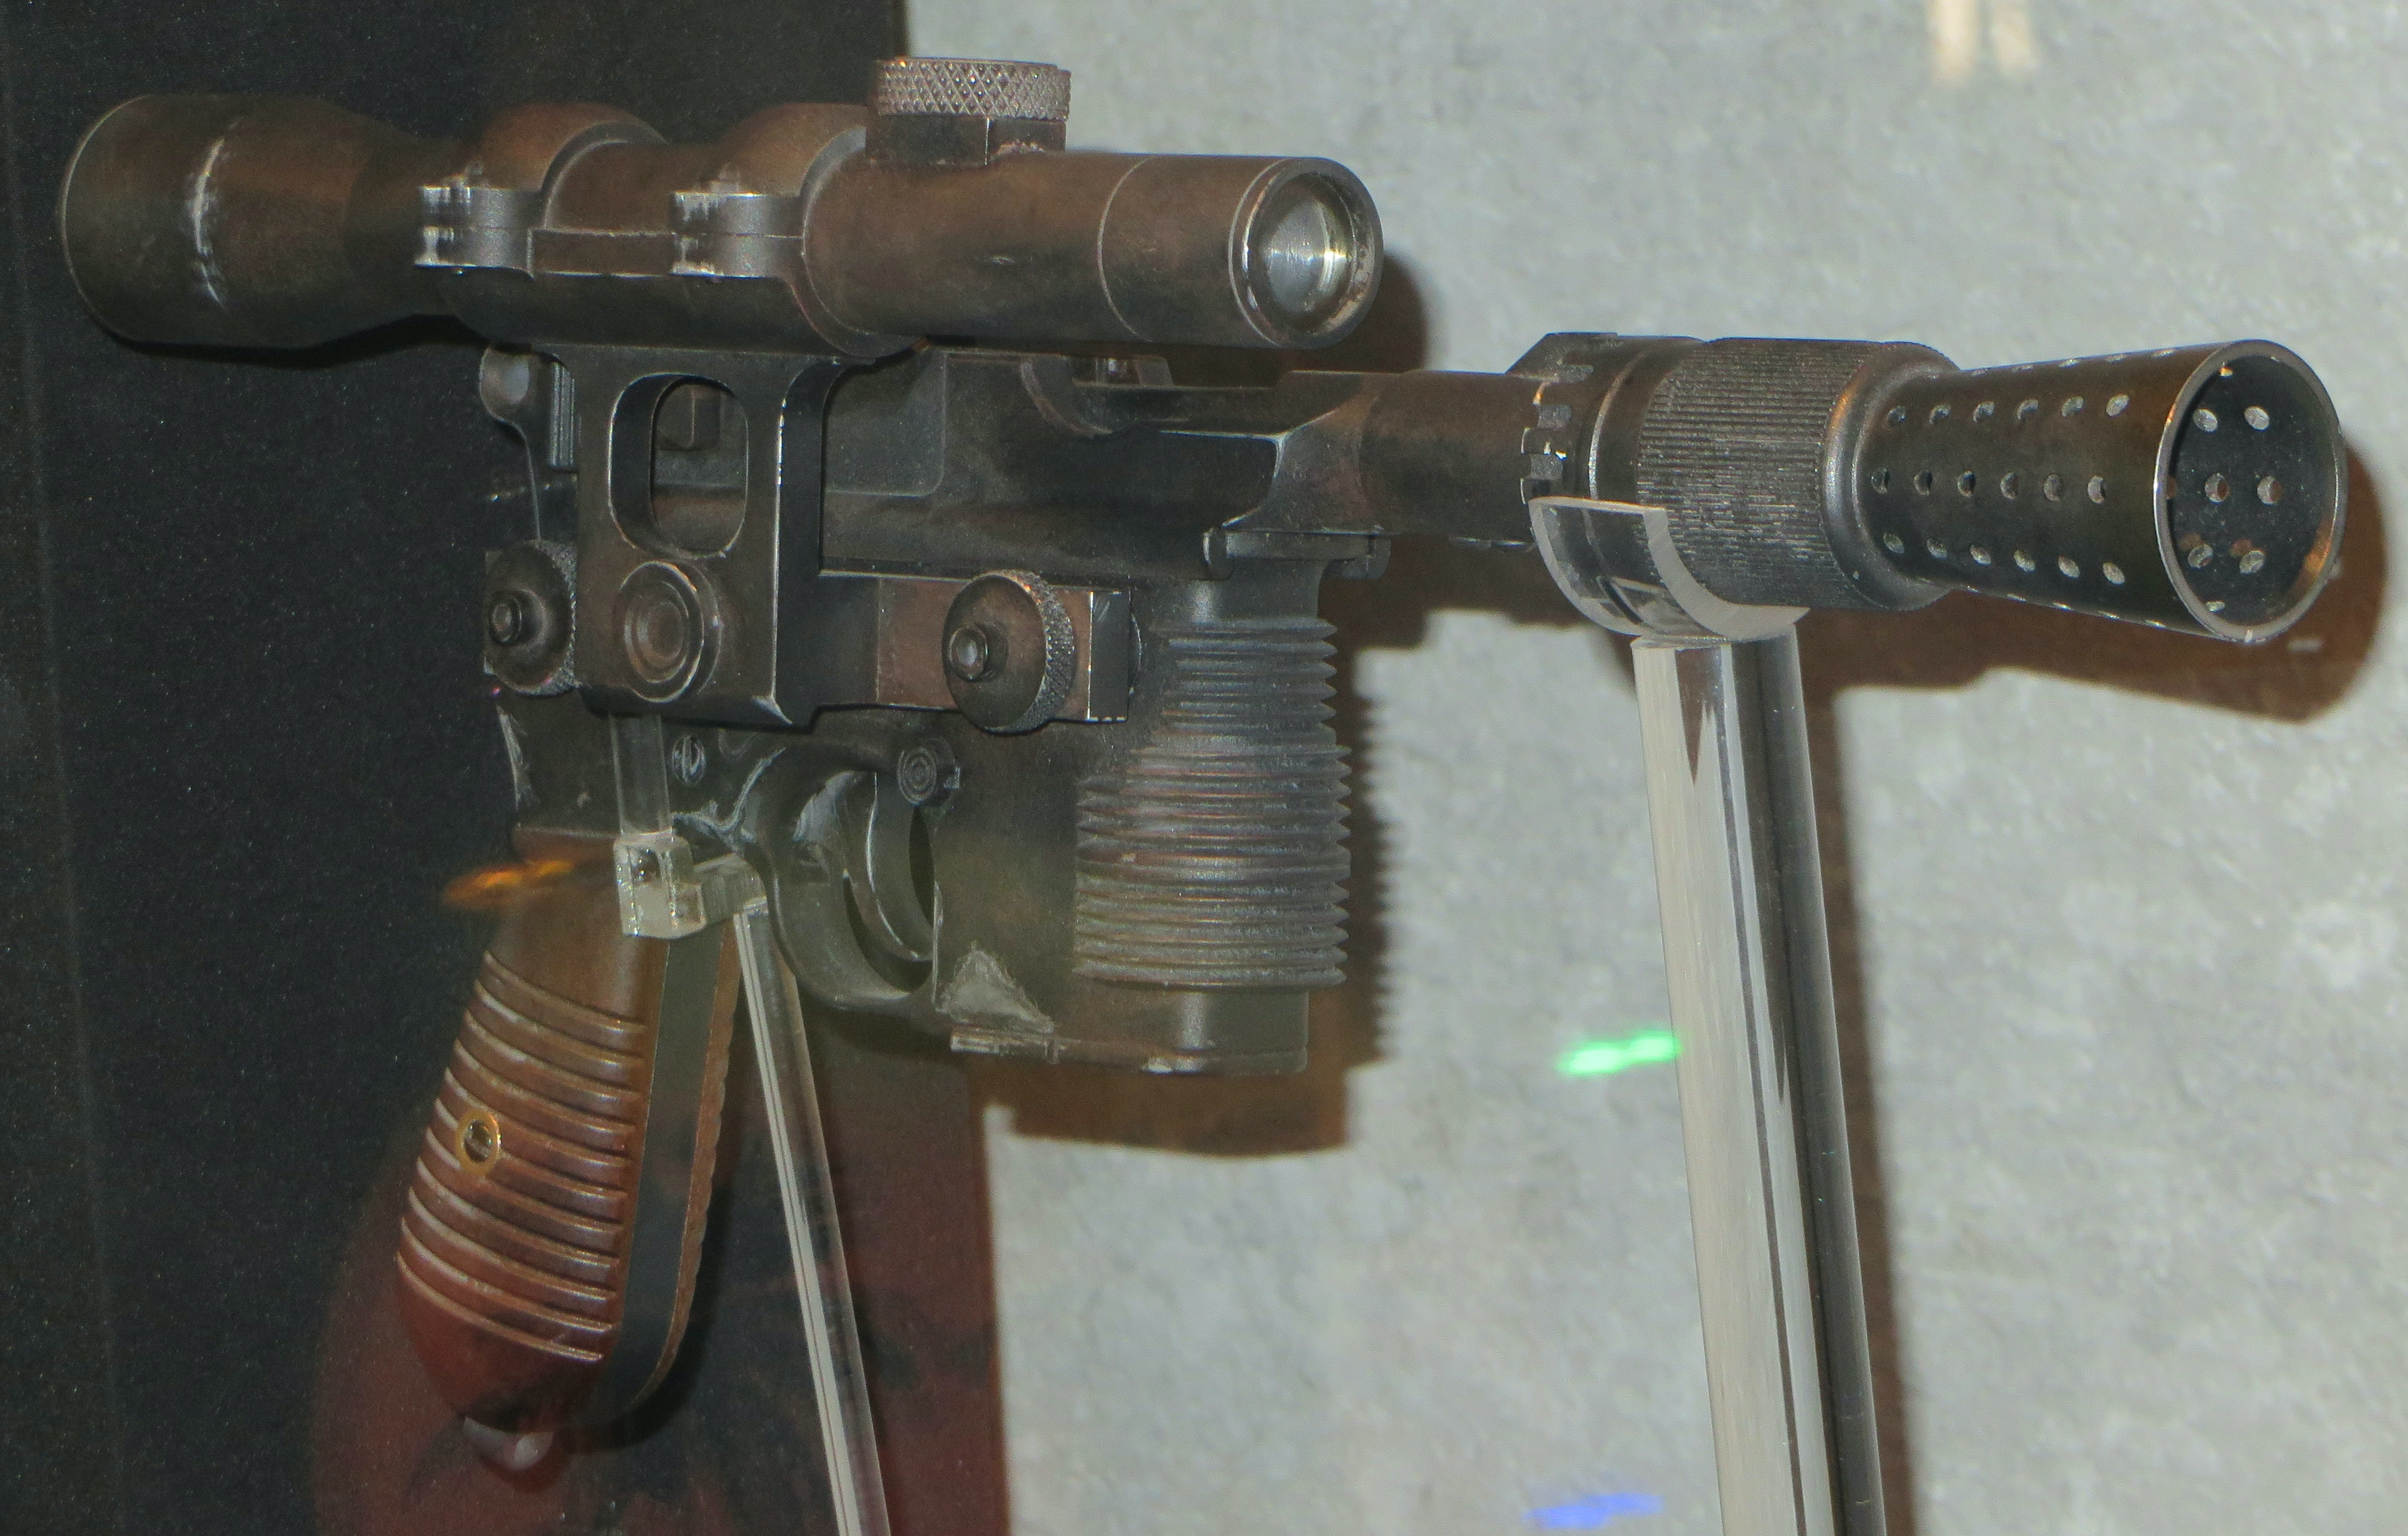 Han Solo's BlasTech DL-44 heavy blaster pistol on display at Star Wars Launch Bay at Disney's Hollywood Studios.